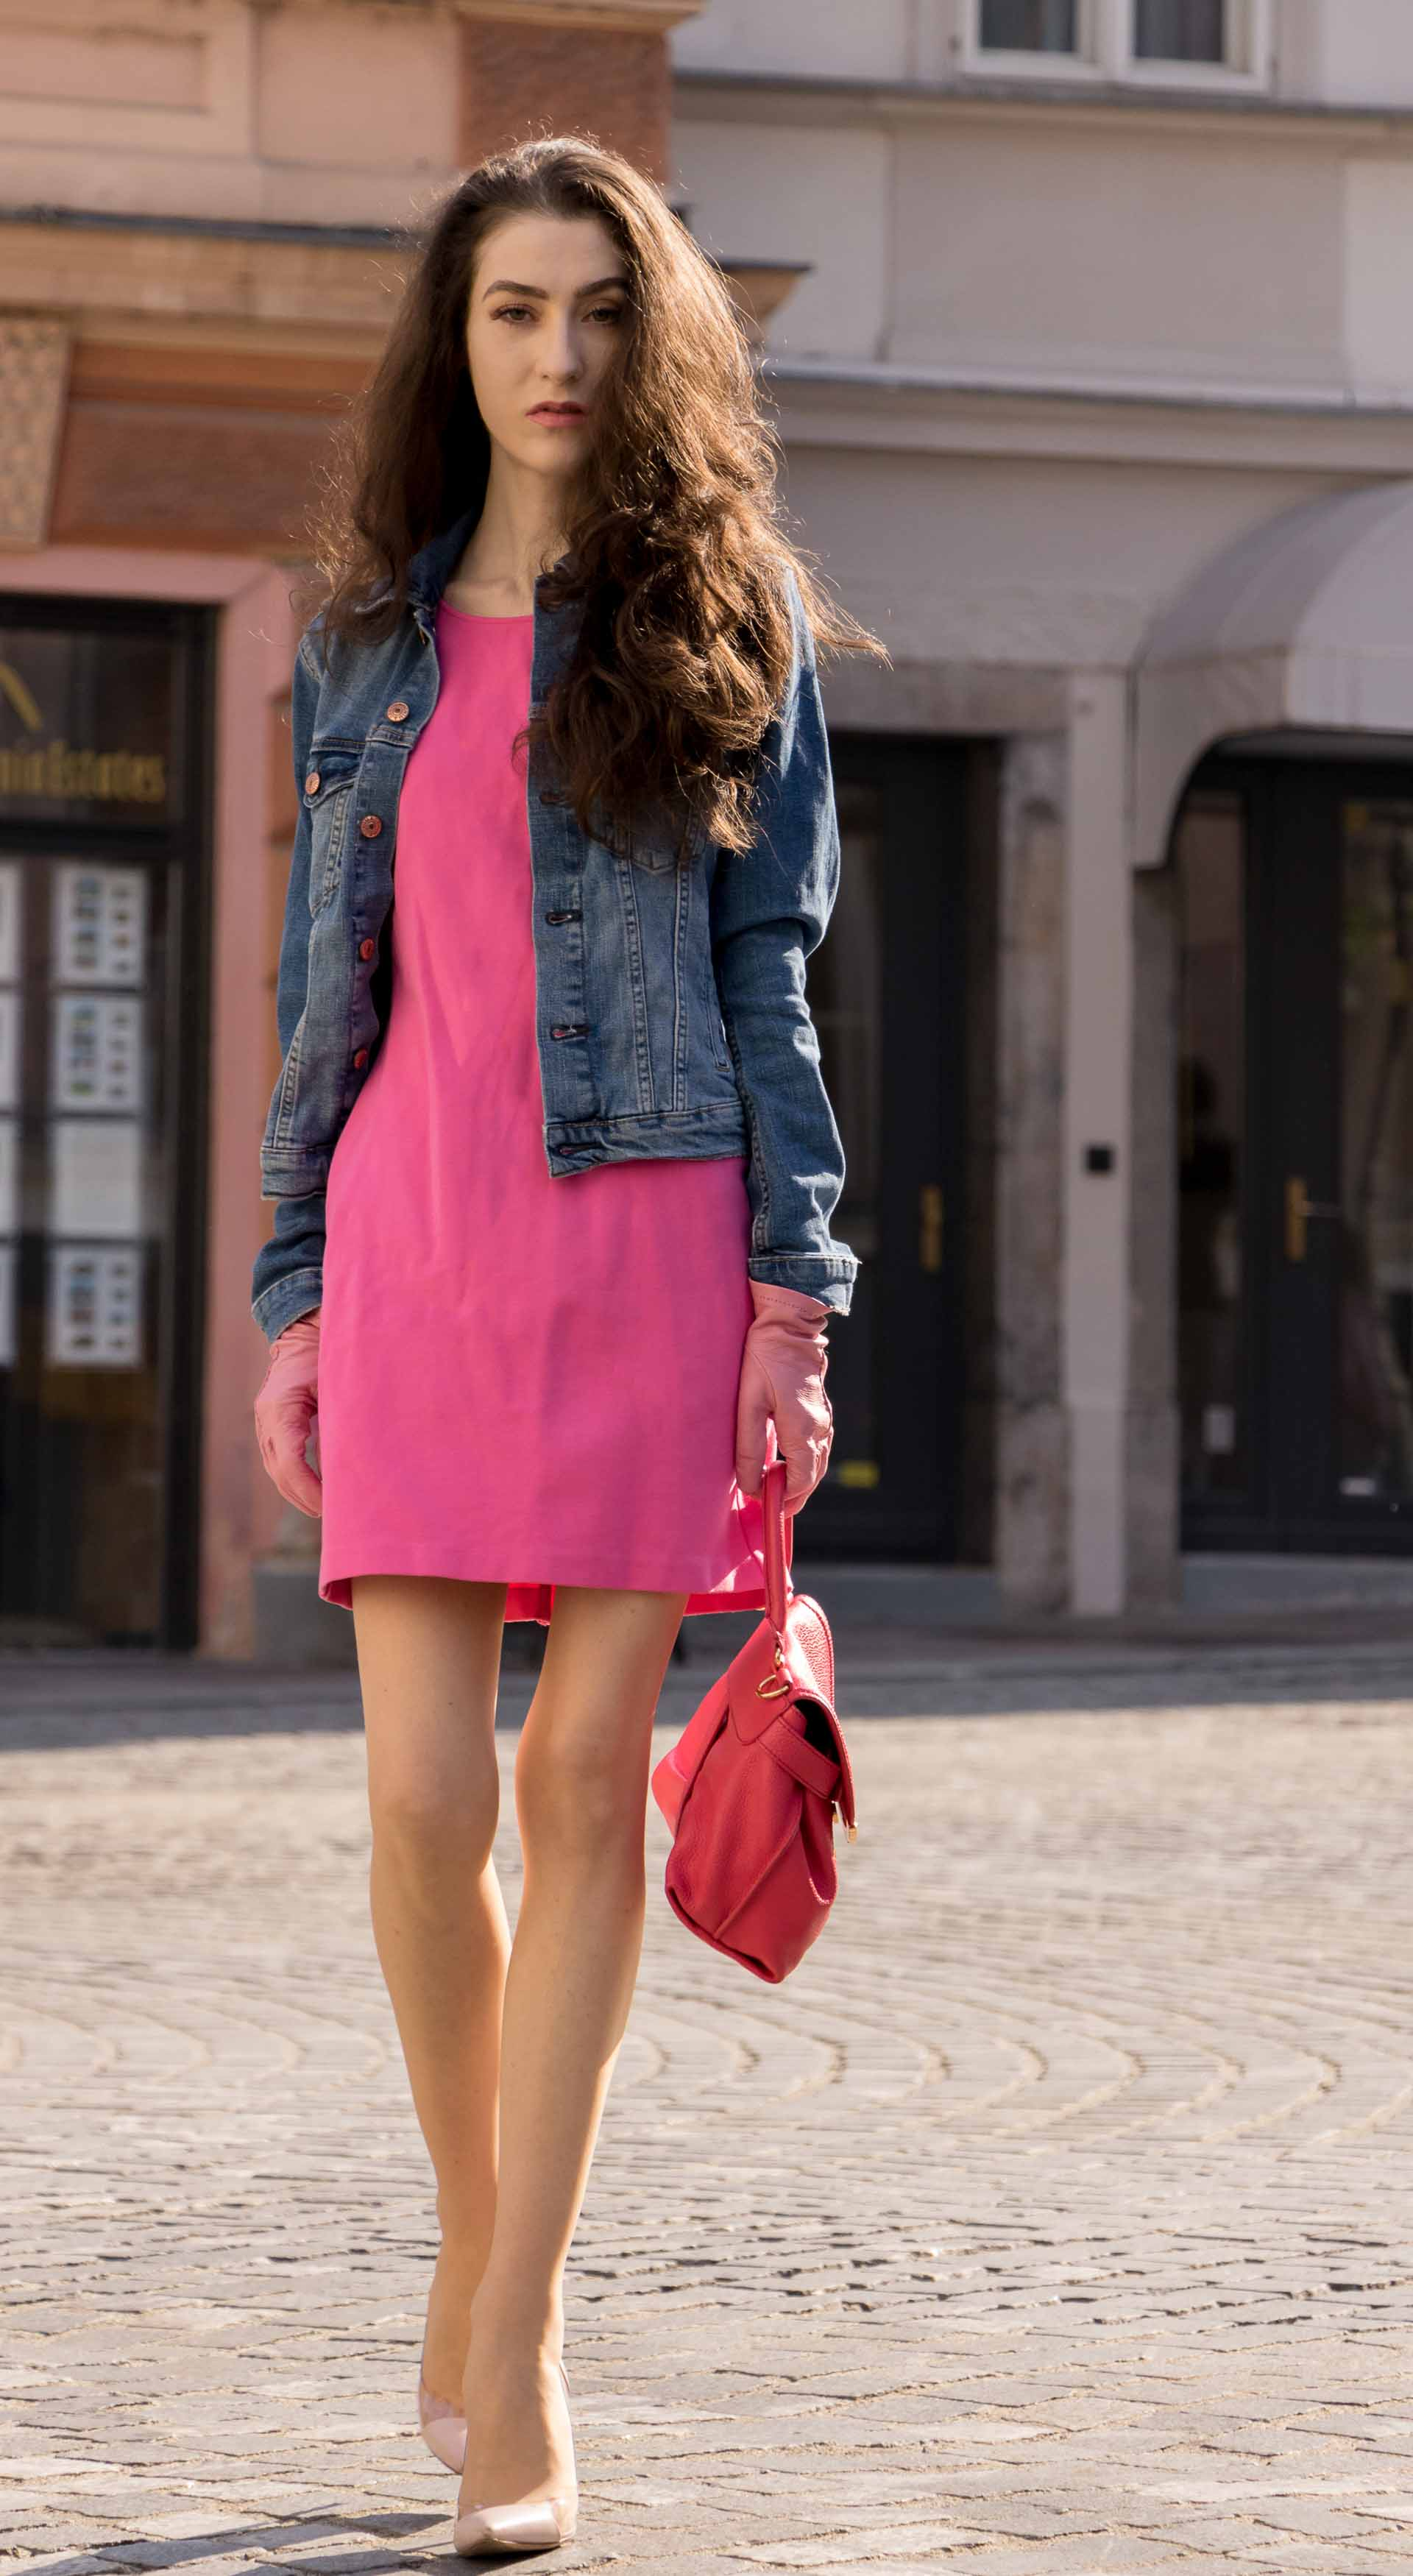 Veronika Lipar Fashion Blogger of Brunette from Wall Street dressed in H&M denim jacket, pink bodycon dress, blush Gianvito Rossi plexi pumps, pink Forzieri gloves, See by Chloé pink top handle bag, Adam Selman x Le Specs white cat eye Lolita sunglasses while walking on the street in Ljubljana